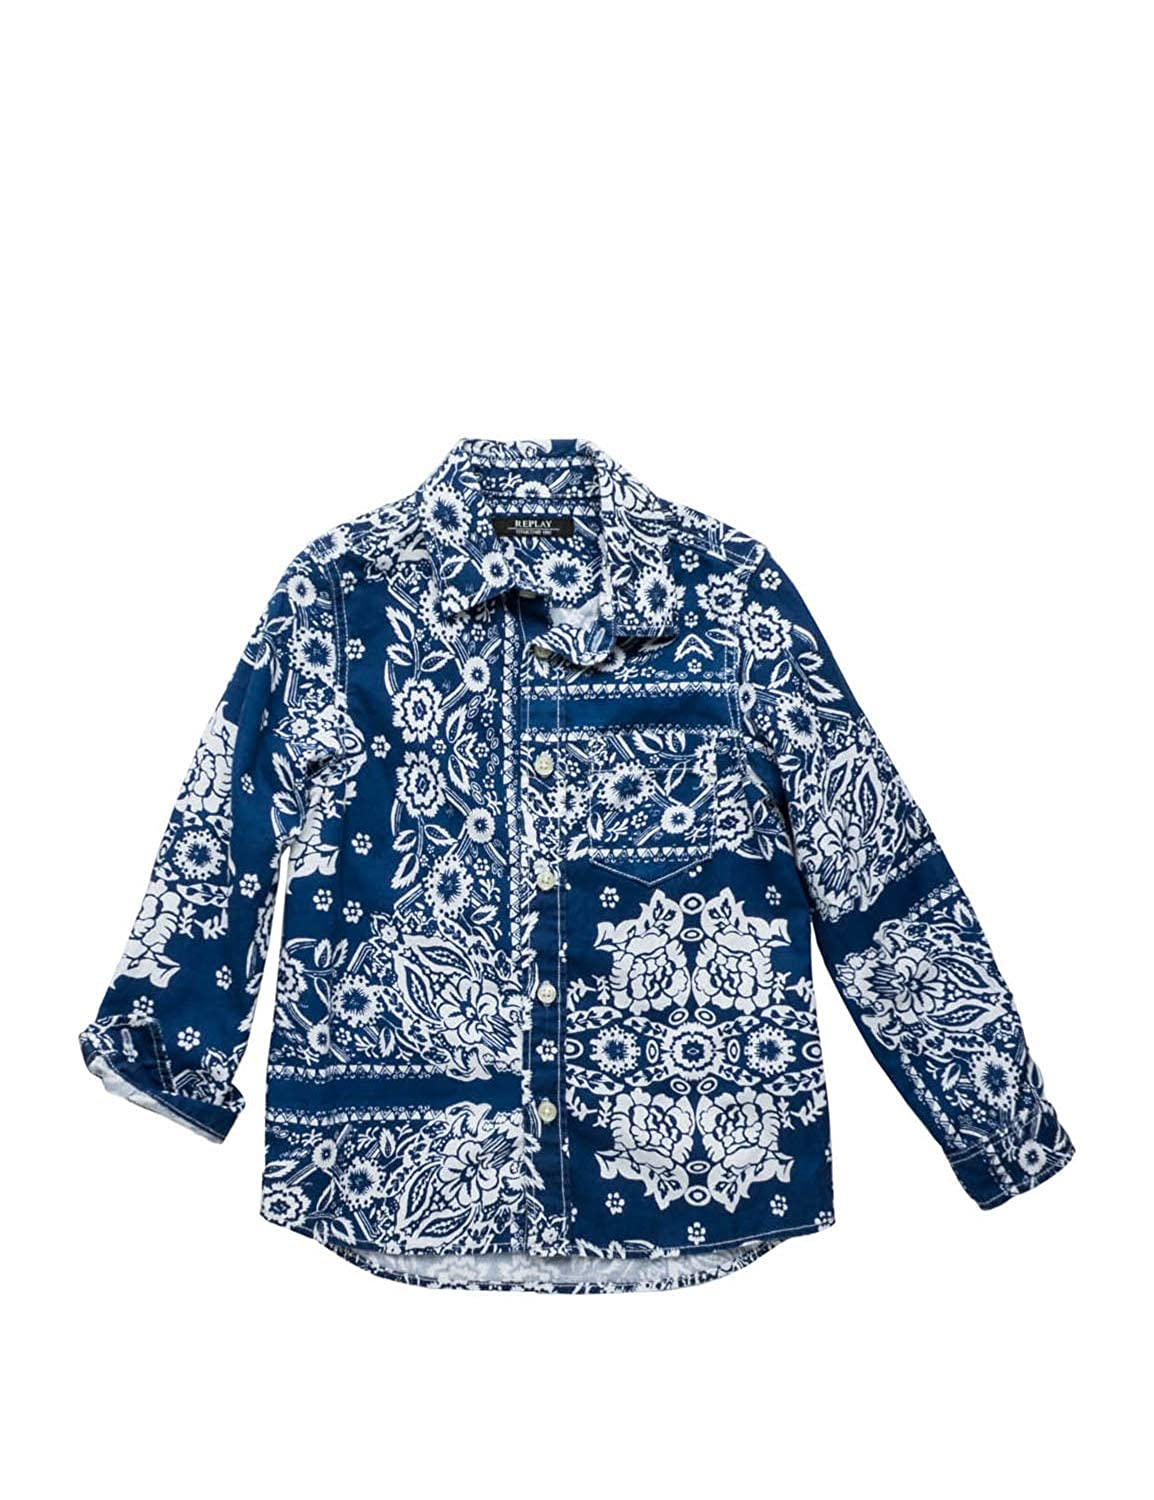 37a3f1519fee Amazon.com: Replay Kids Blue Shirt with Bandana Print Shirt with Bandana  Print: Clothing